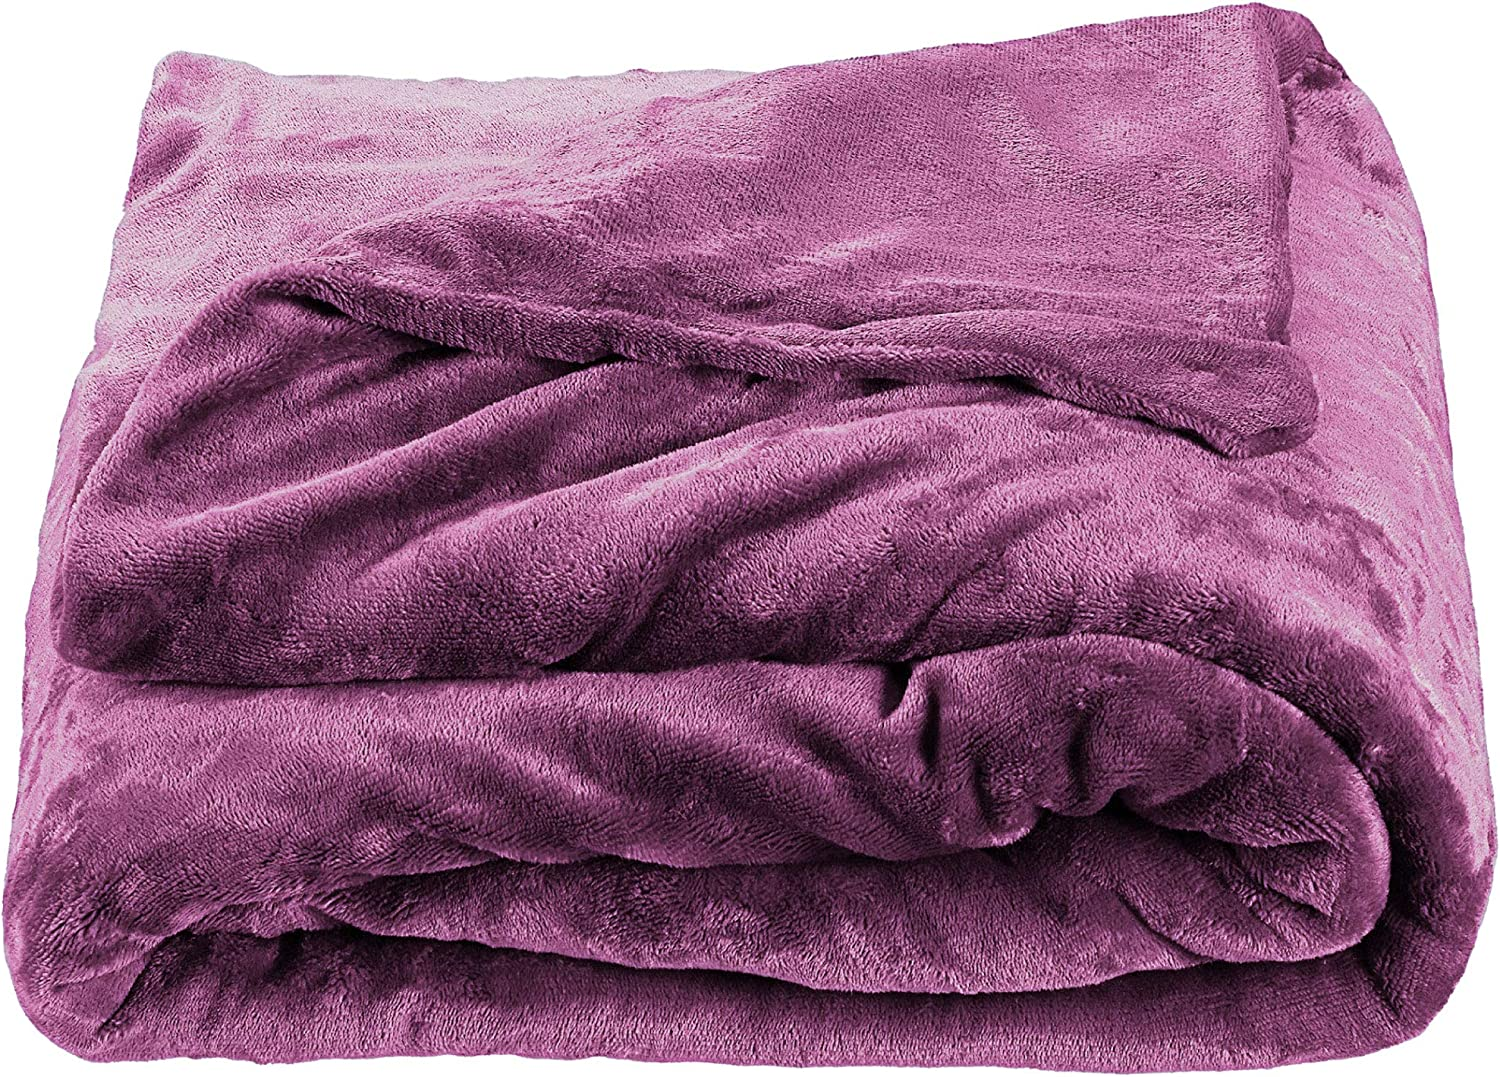 """Measures 36/"""" x 56/"""" Brookstone Innovations Plush Childrens Weighted Blanket Removable Machine Washable Duvet Cover 6 Pound Weight Charcoal"""